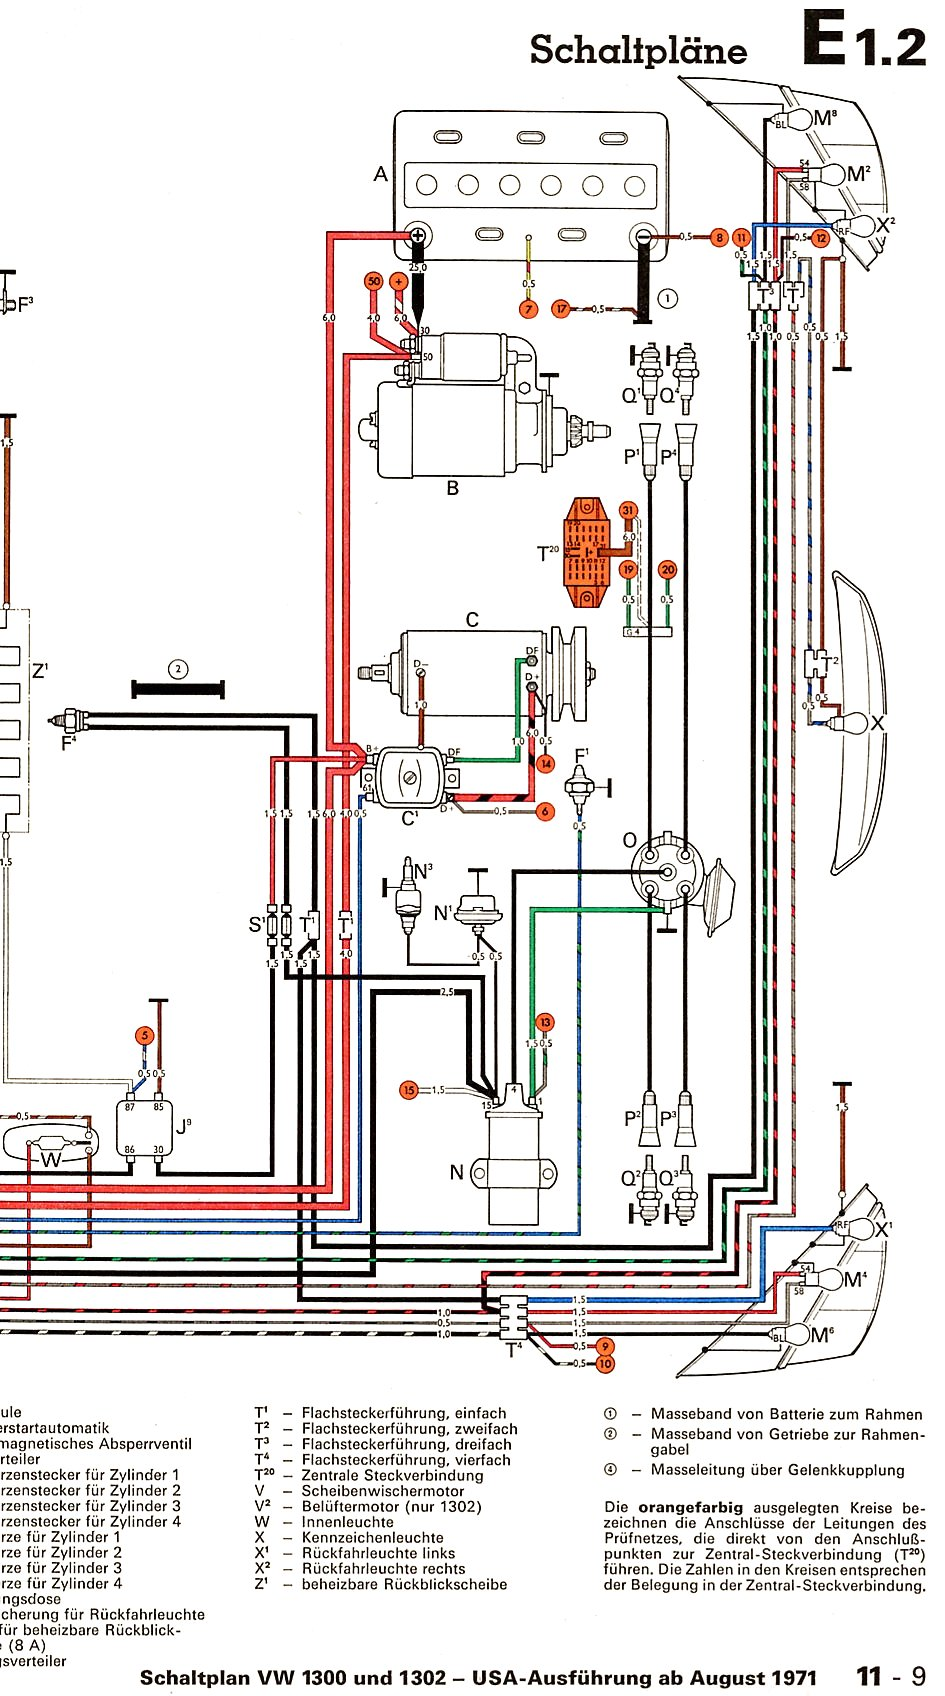 2004 Touareg Fuse Box Wiring Library Vw Diagram 74 Beetle Ignition Shoptalkforums Com Rh